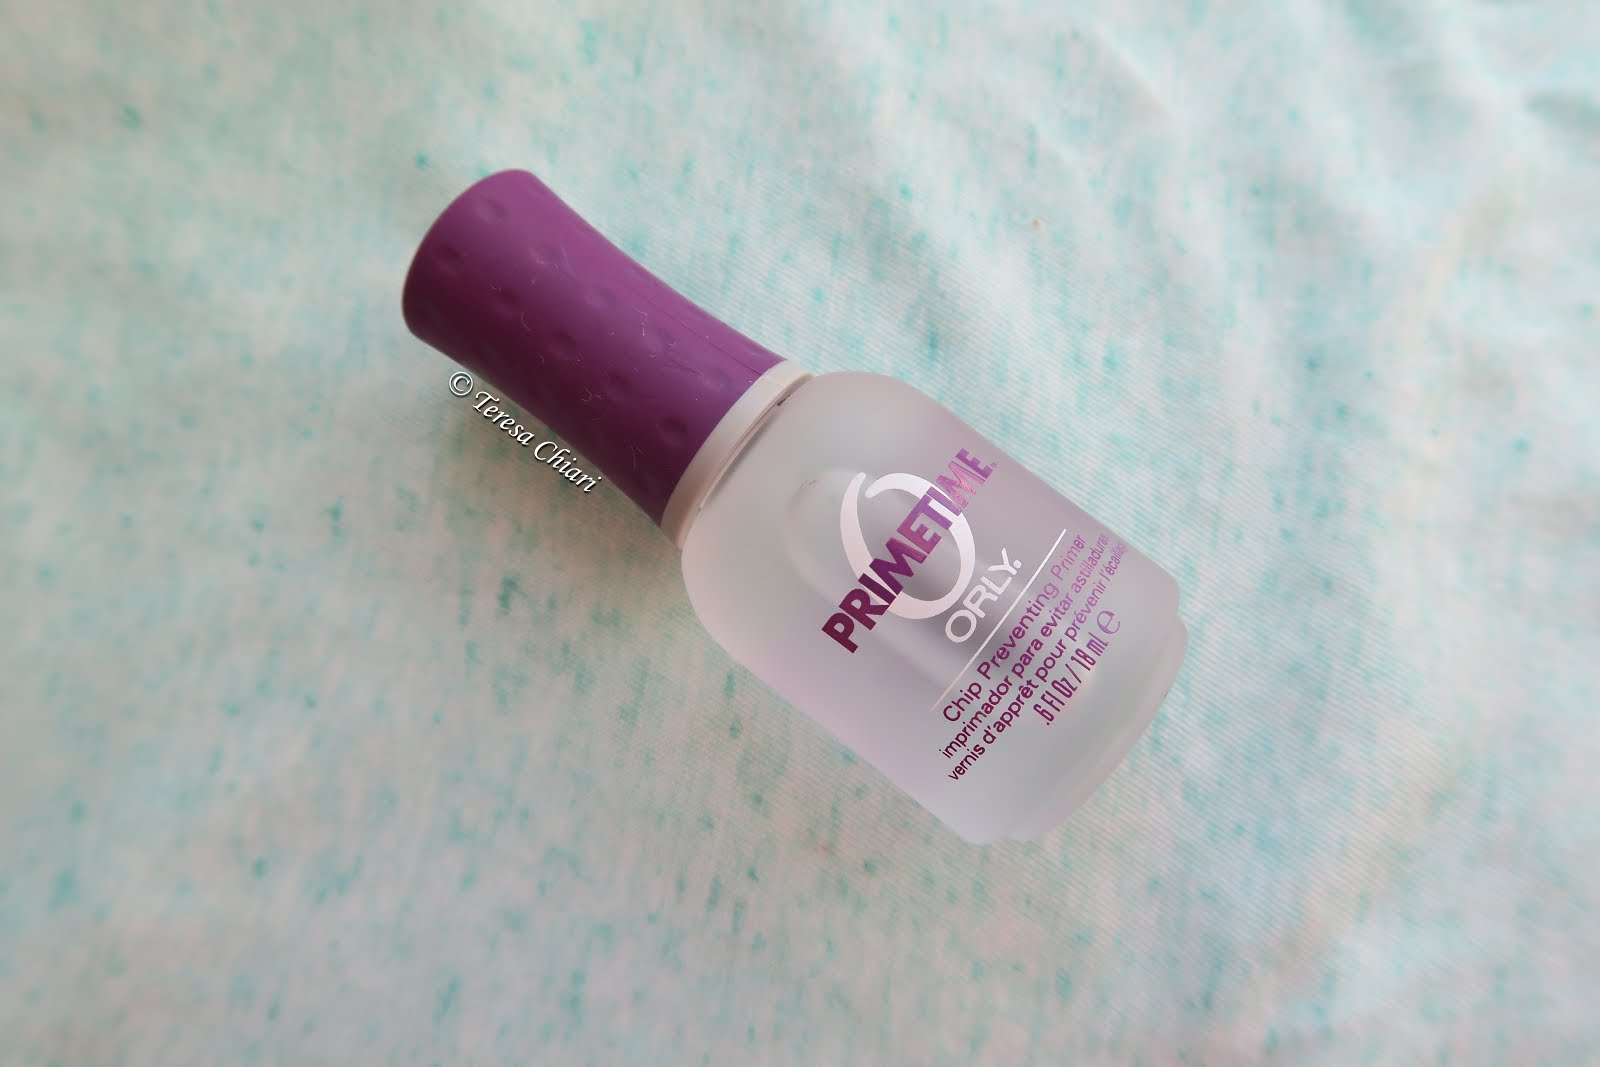 Orly Nail Polish Dry Time - Creative Touch